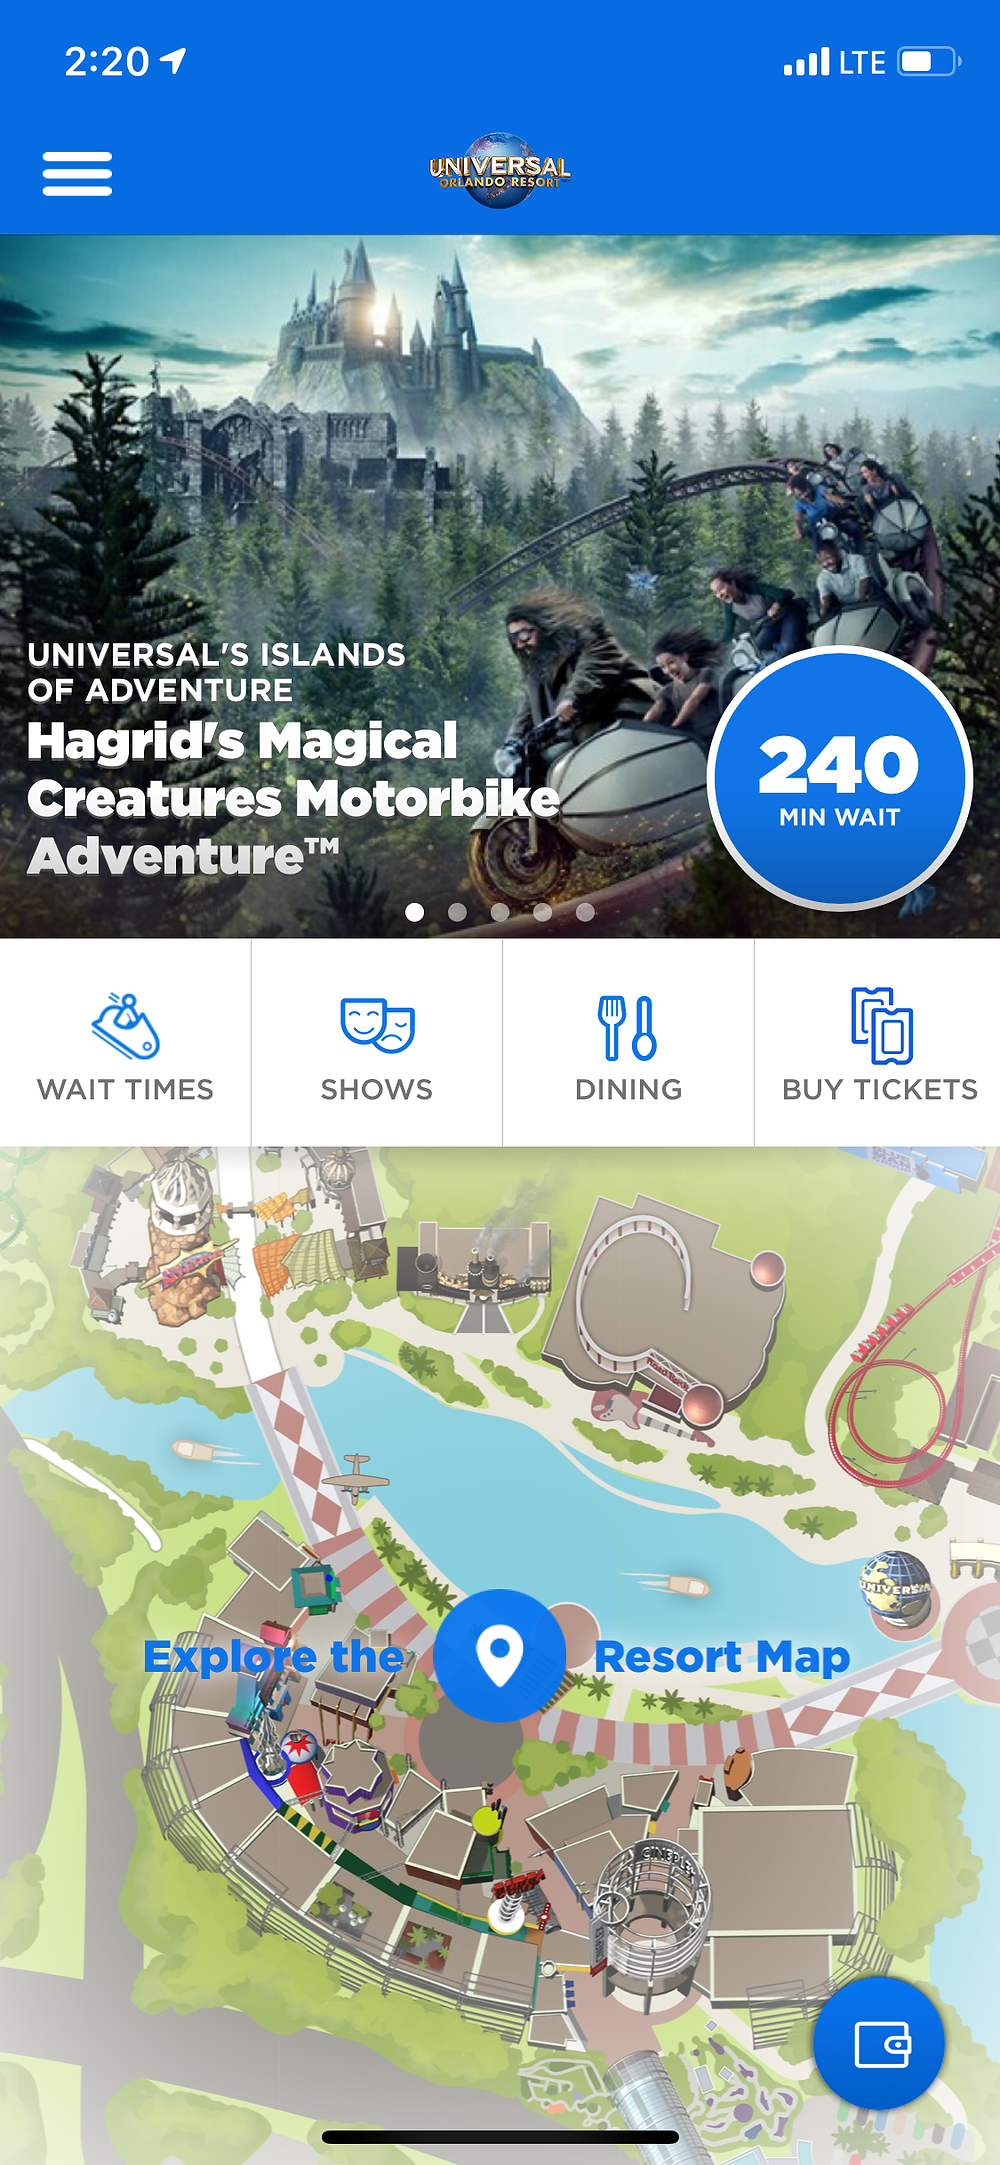 The app interface - showing the current wait time for the new ride.